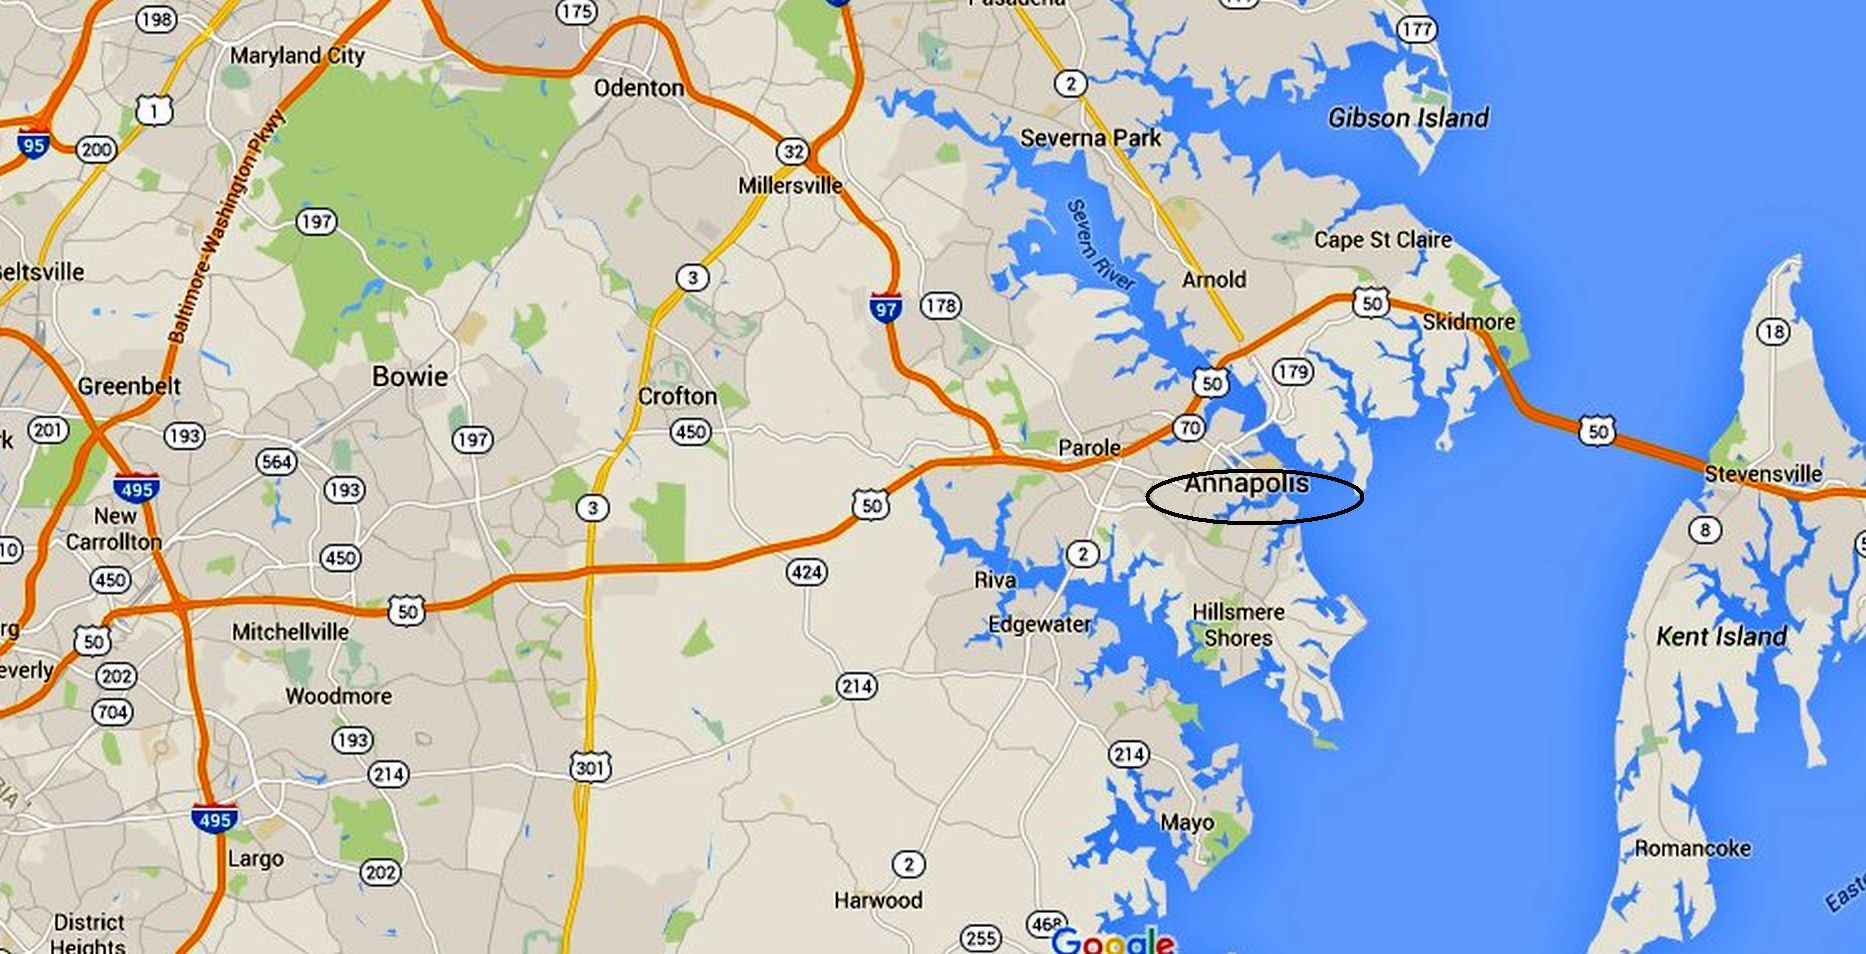 Annapolis Maps Downtown And The Surrounding Area